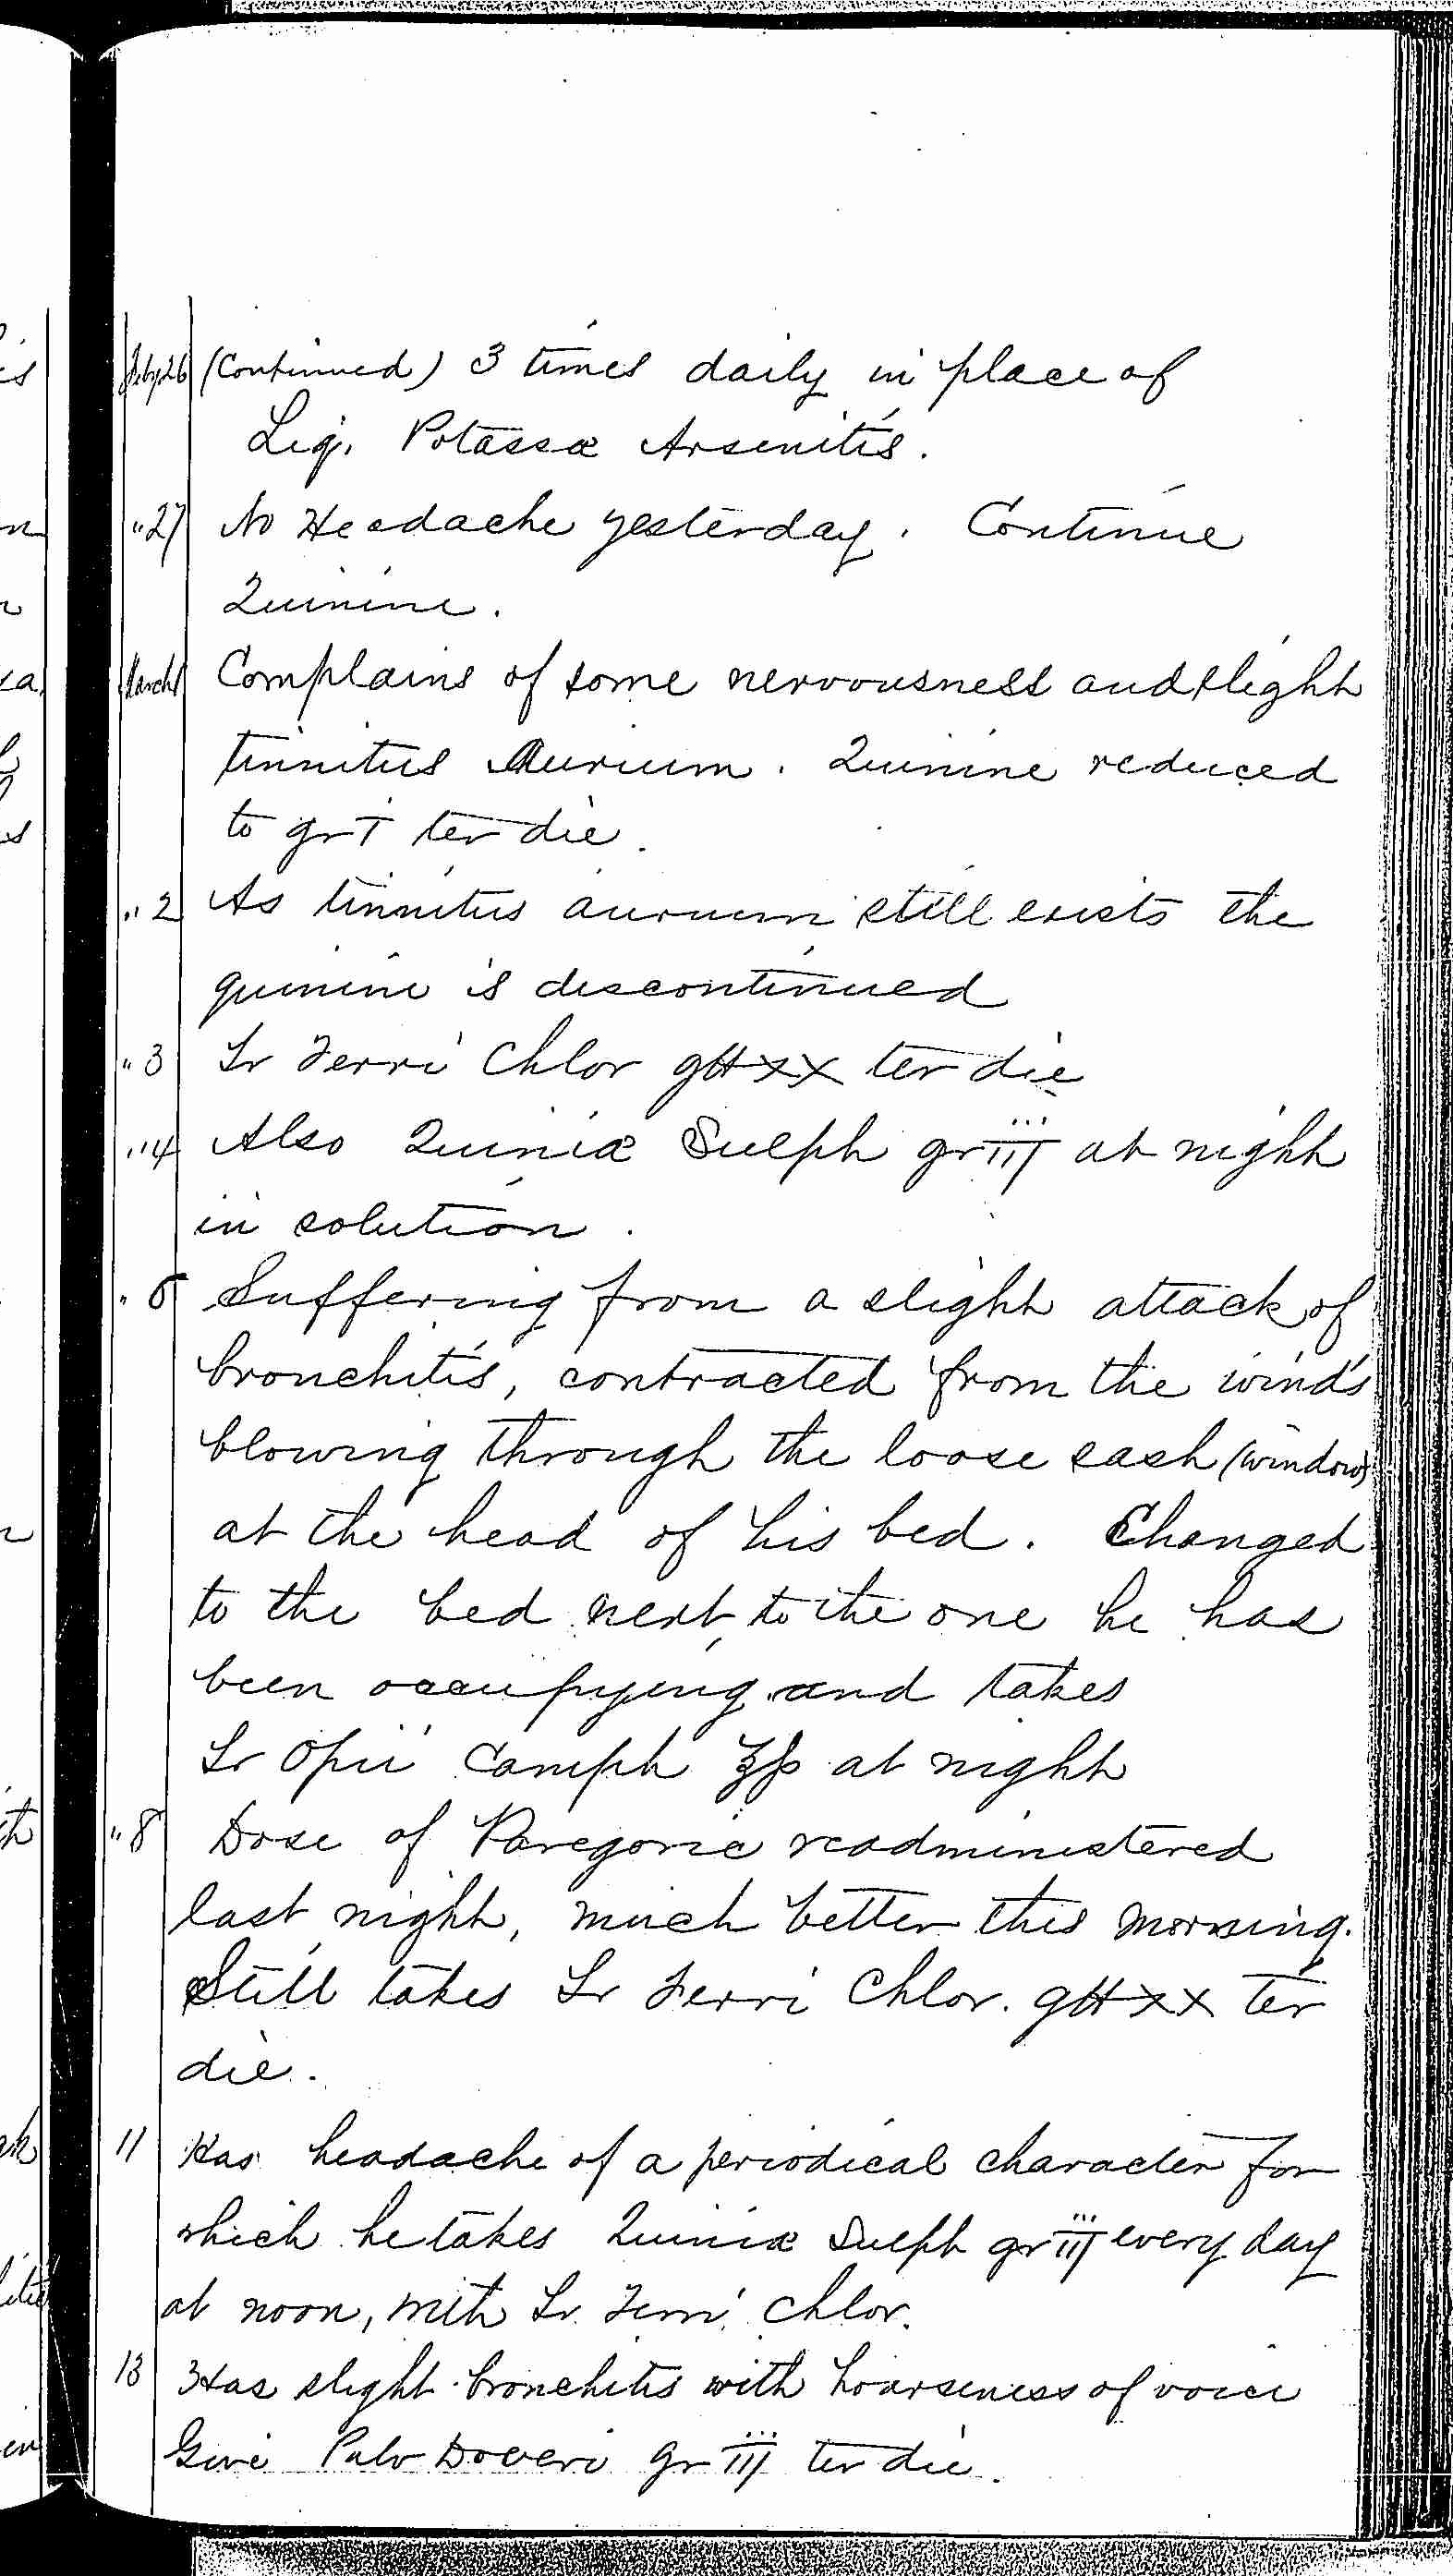 Entry for Frederick Hammett (page 3 of 5) in the log Hospital Tickets and Case Papers - Naval Hospital - Washington, D.C. - 1868-69